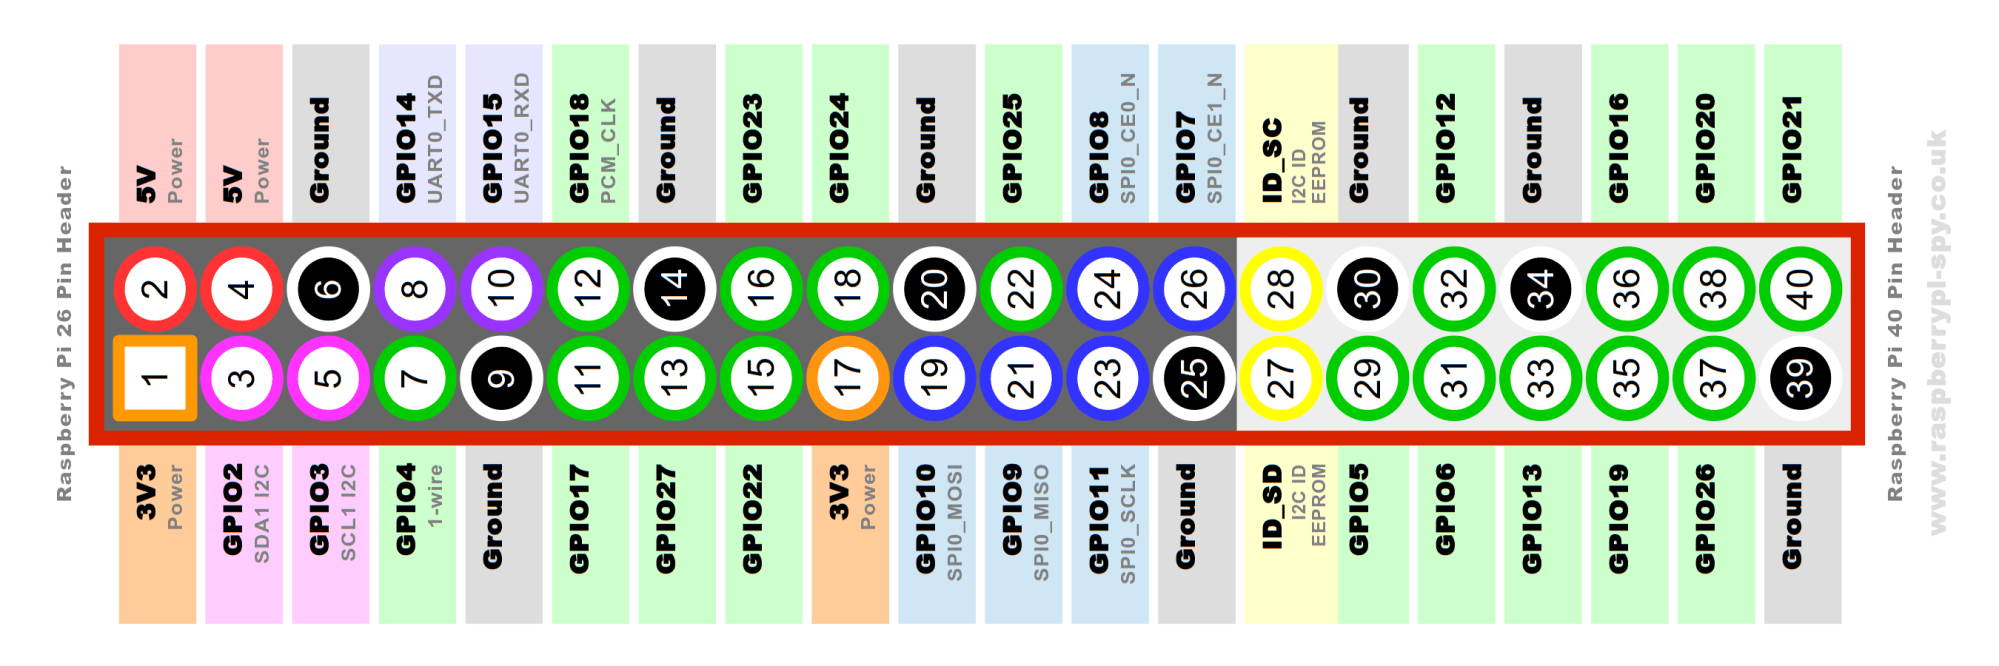 hight resolution of simple guide to the raspberry pi gpio header and pins